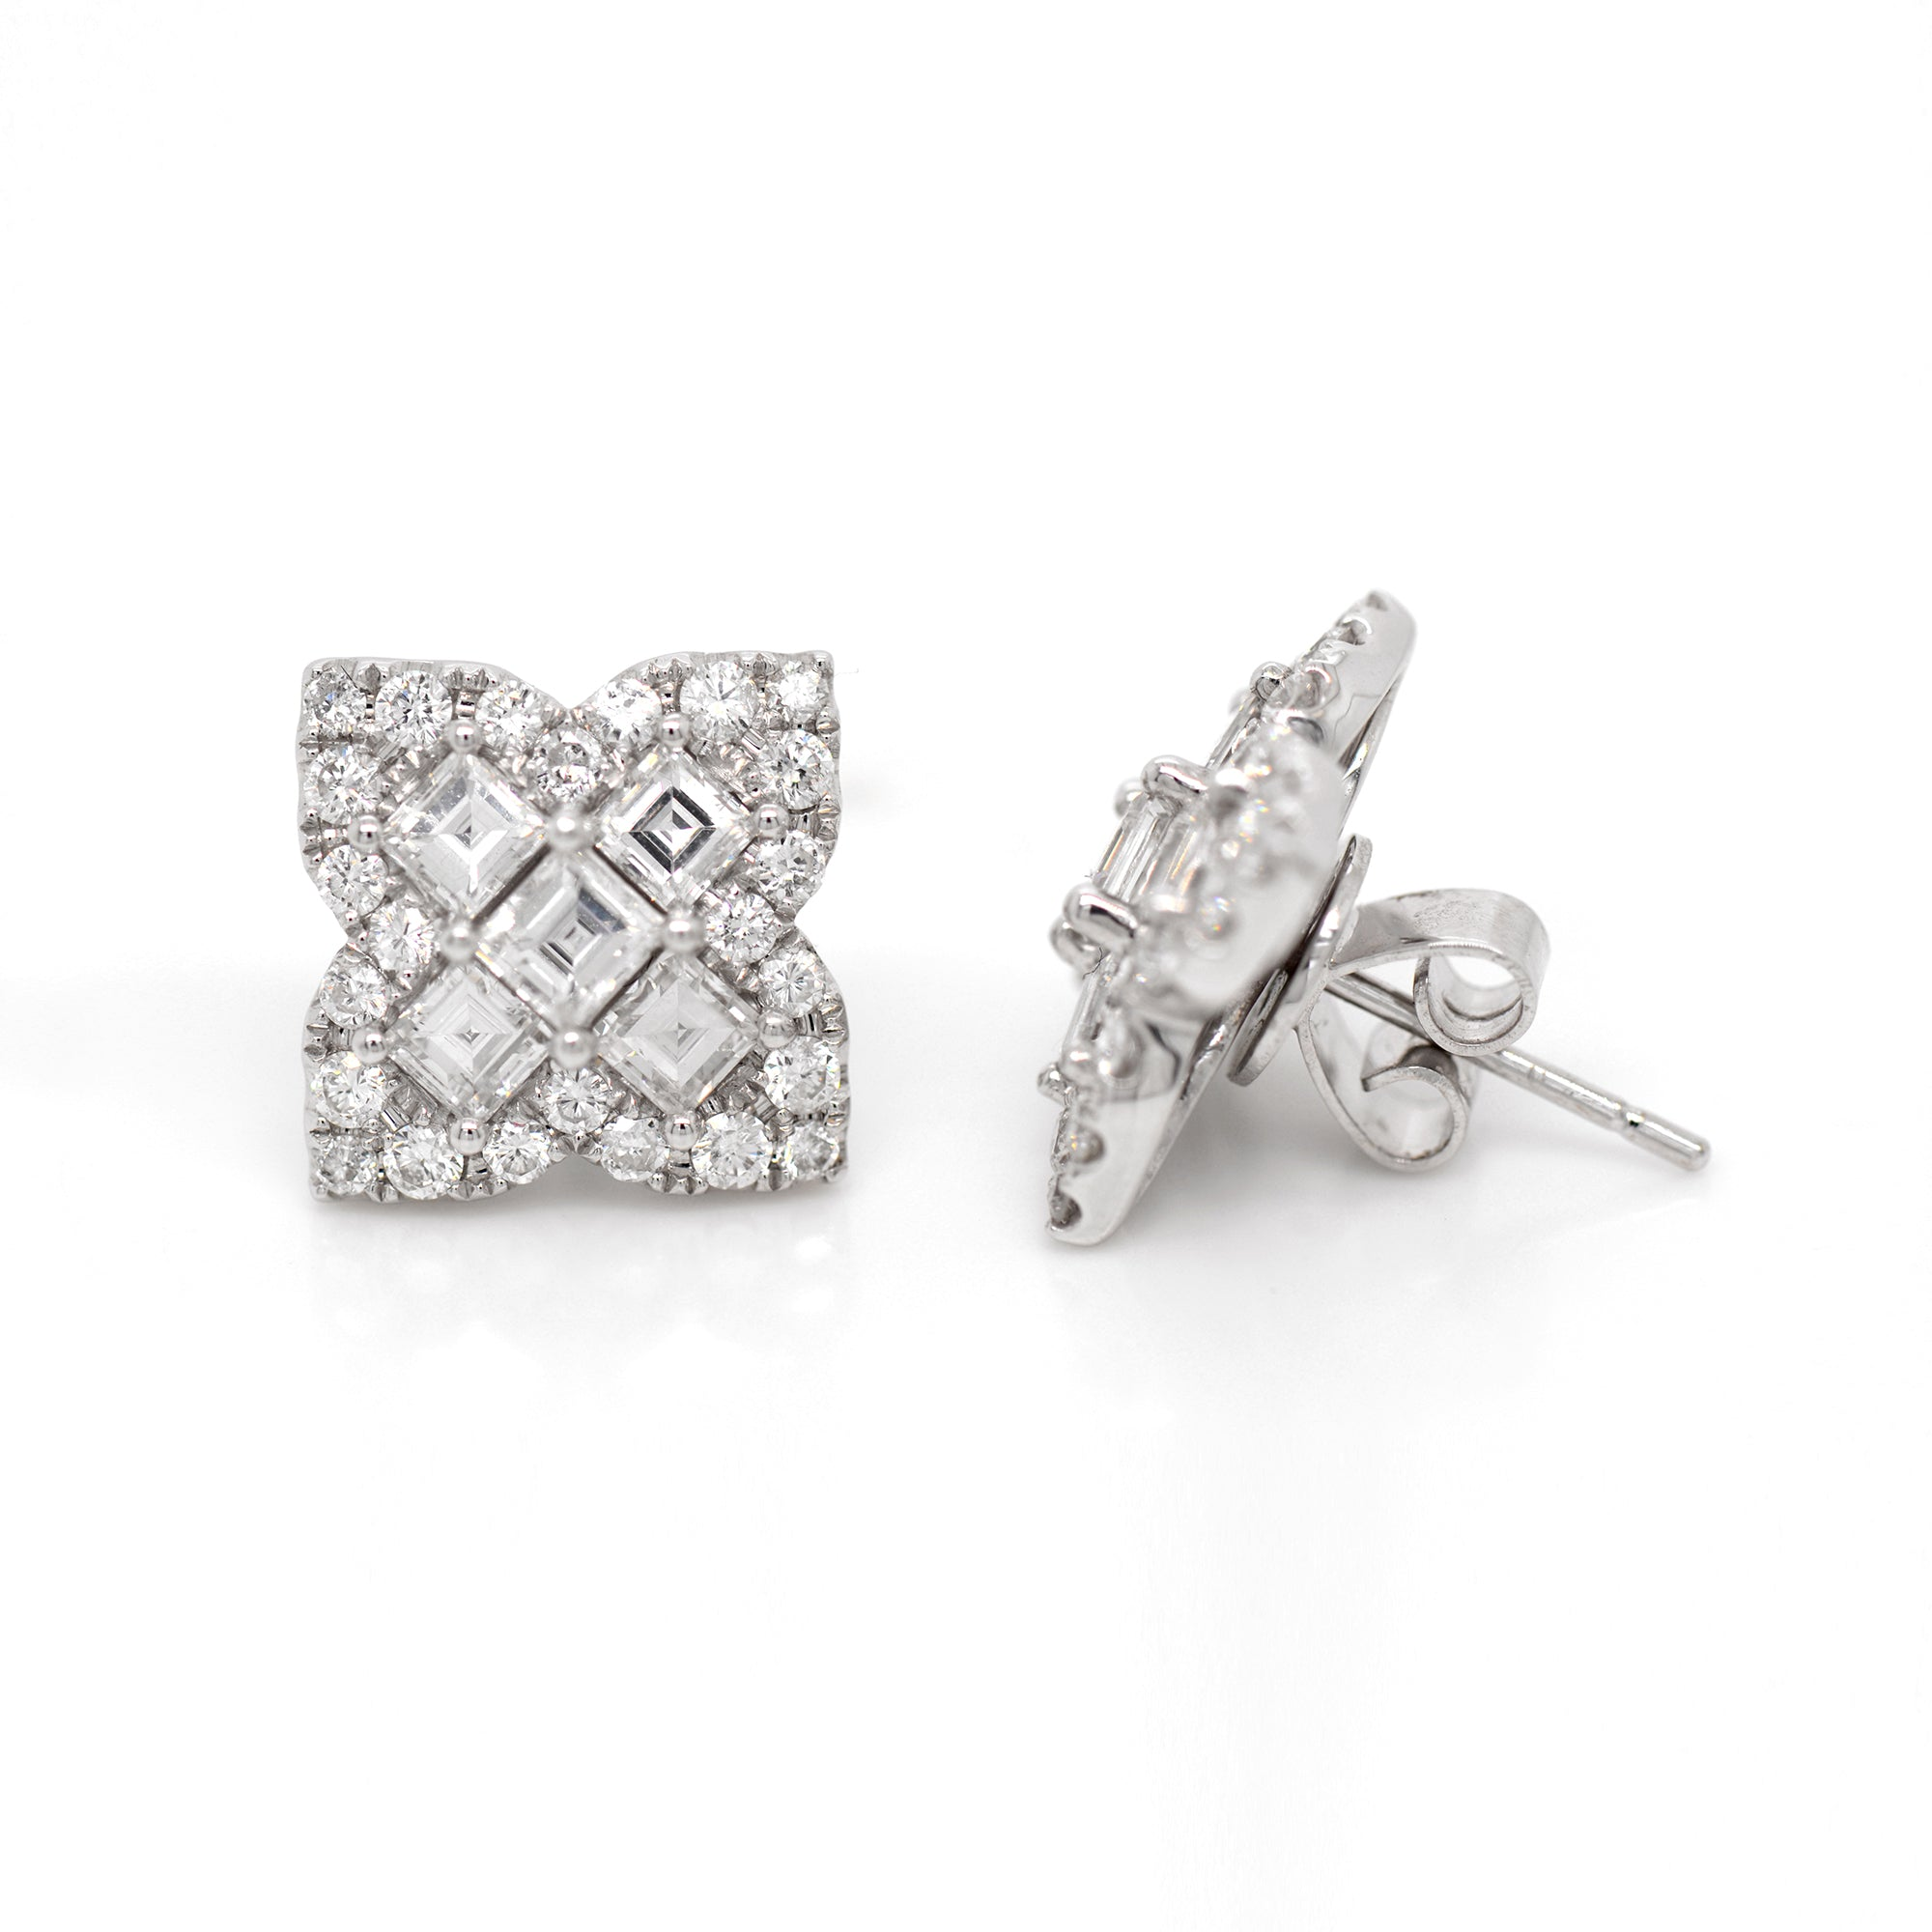 18K white gold diamond earrings feature Asscher and round diamonds weighing a total of 2.69 carats set in a 4-point clover design.